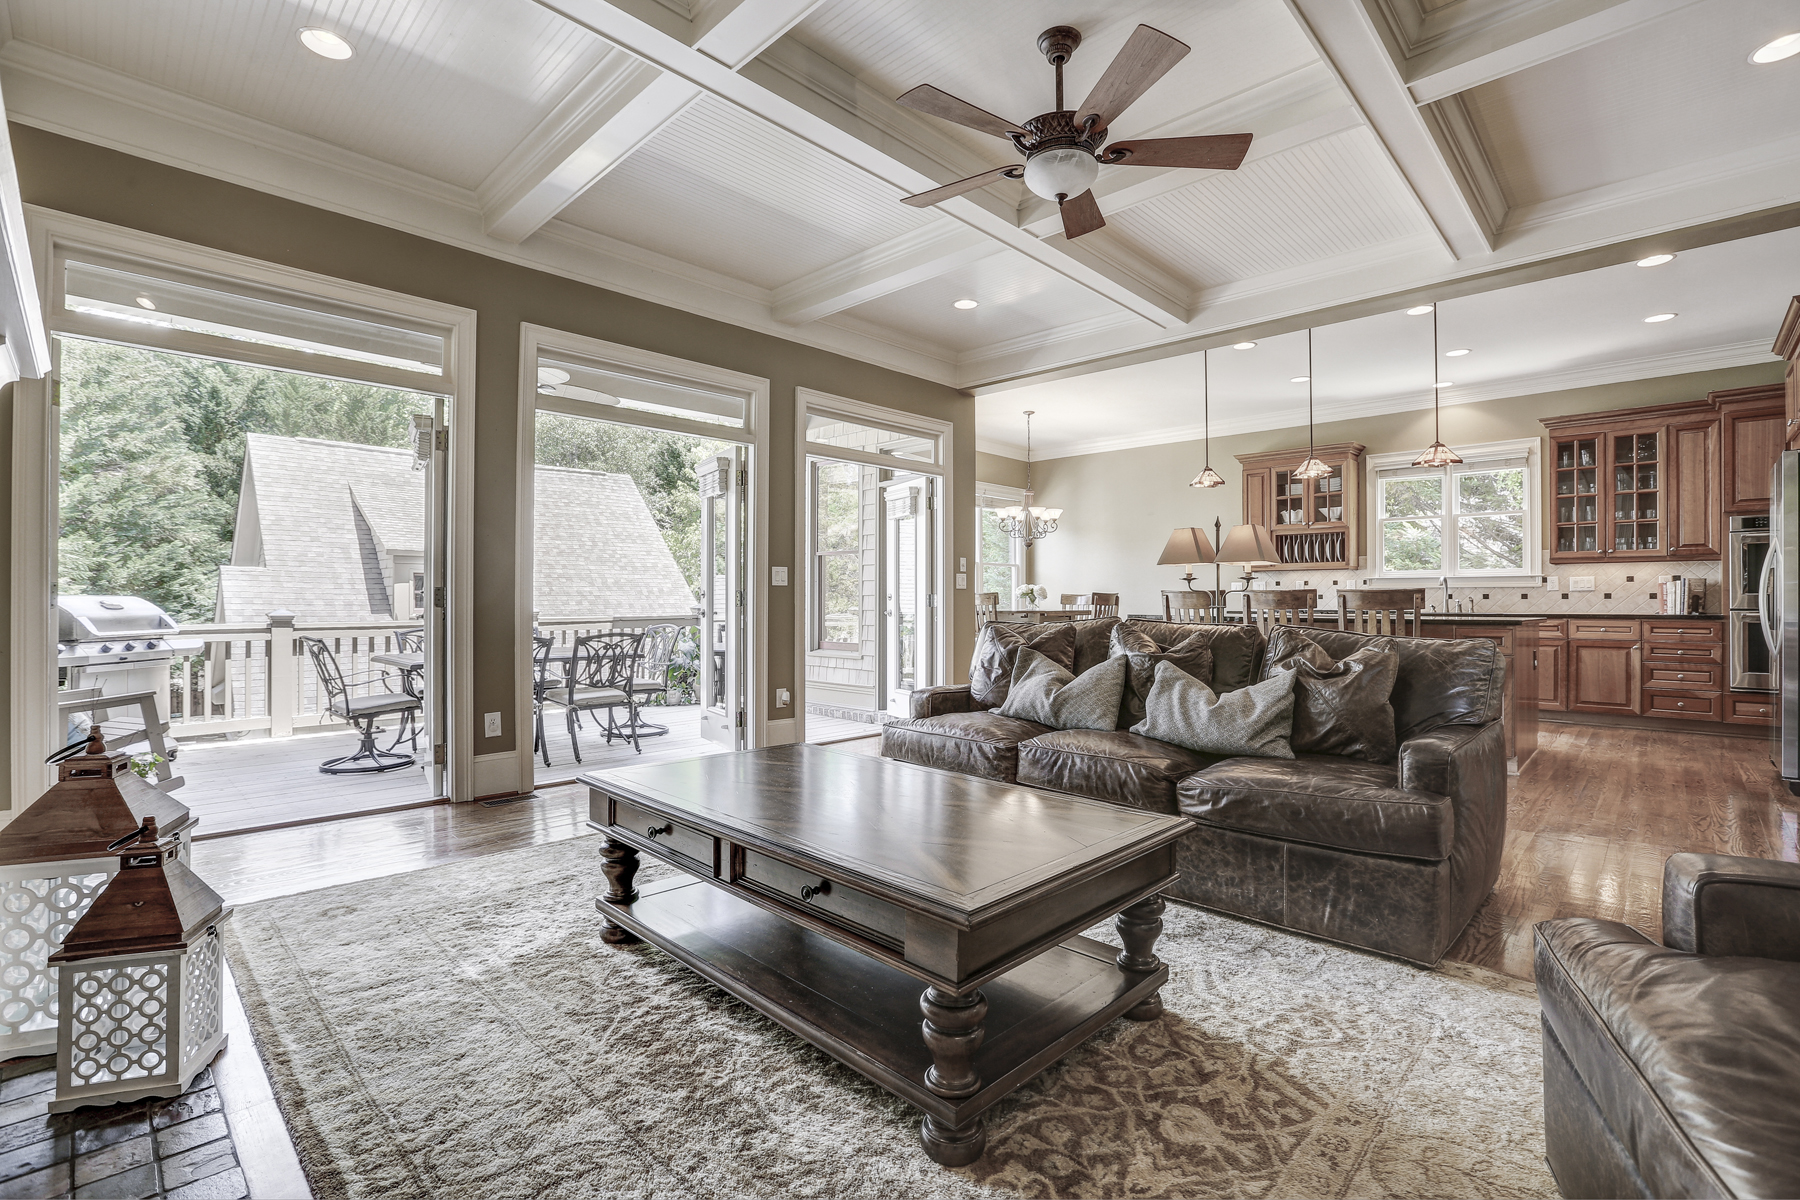 Single Family Home for Sale at Live Enjoyment - Enjoy The Satisfaction Of Quality Construction 4033 Newhaven Circle NE Brookhaven, Georgia 30319 United States